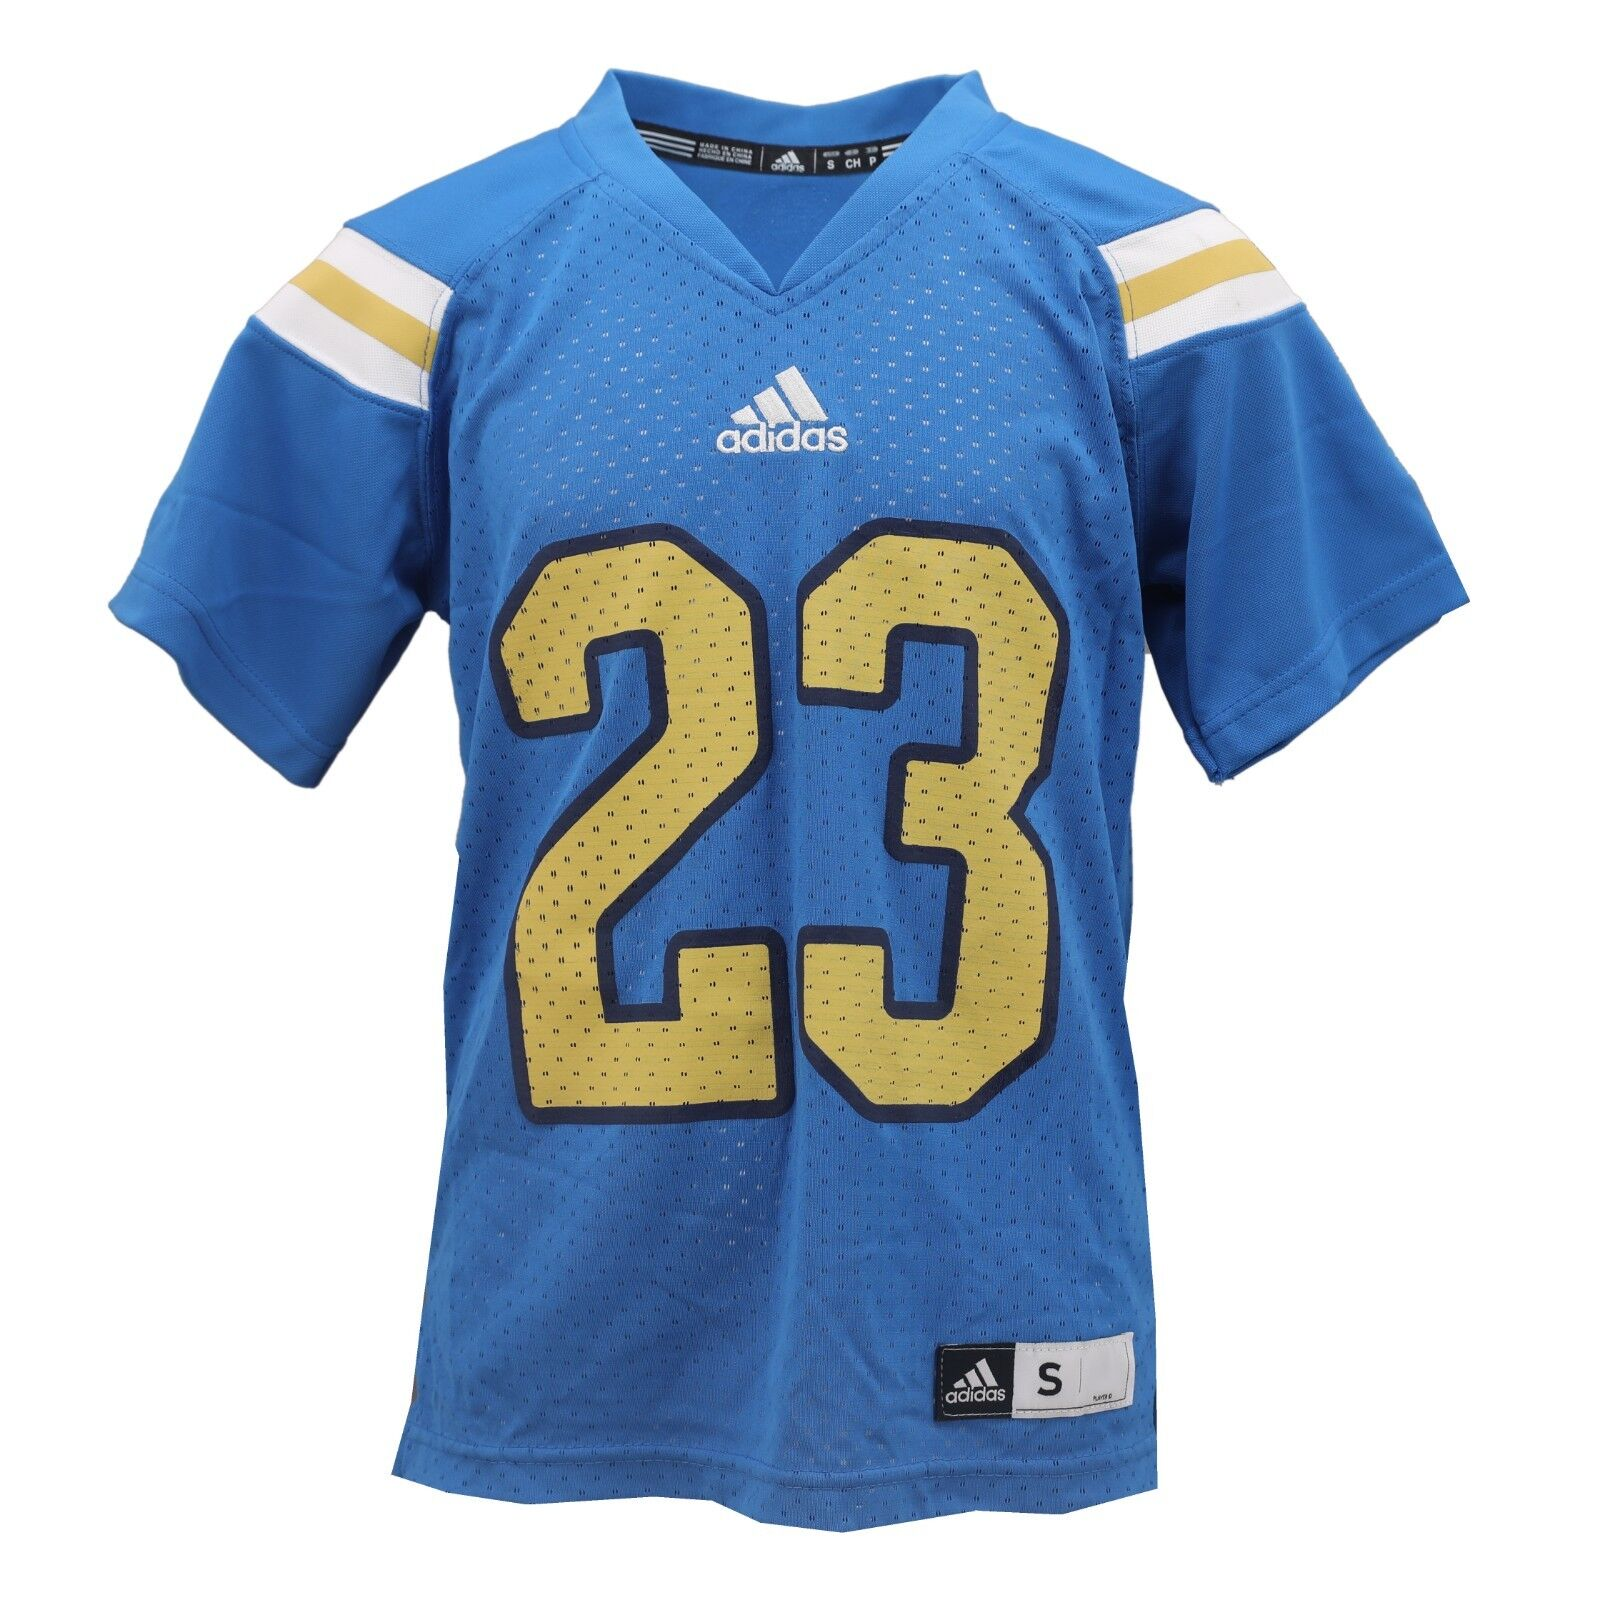 ucla kids football jersey